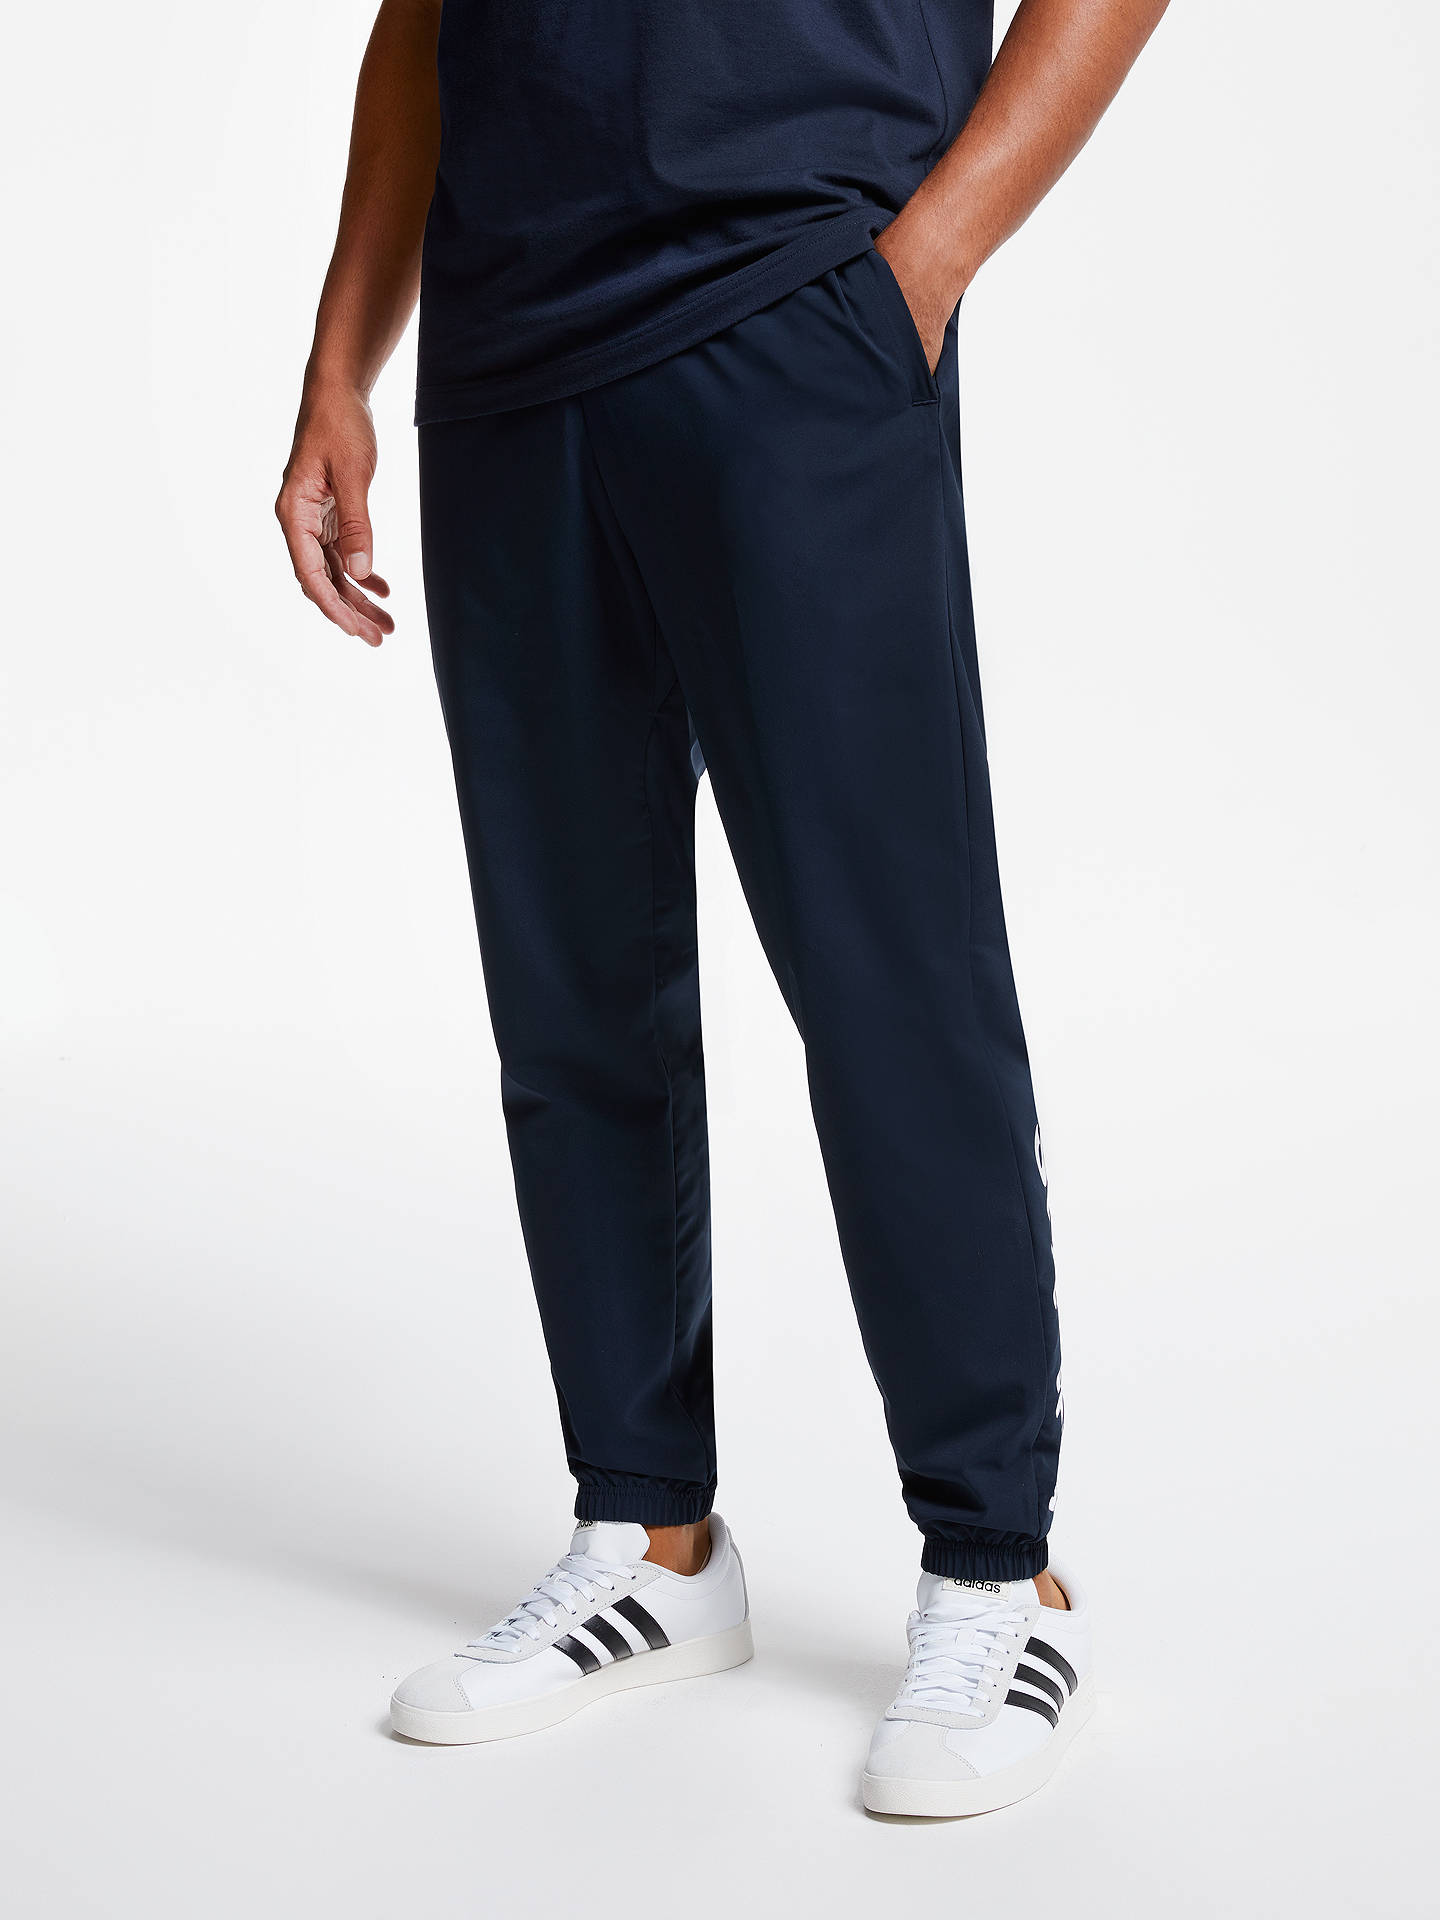 adidas Essential Linear Stanford Tracksuit Bottoms at John Lewis ... 4d362493d5b7